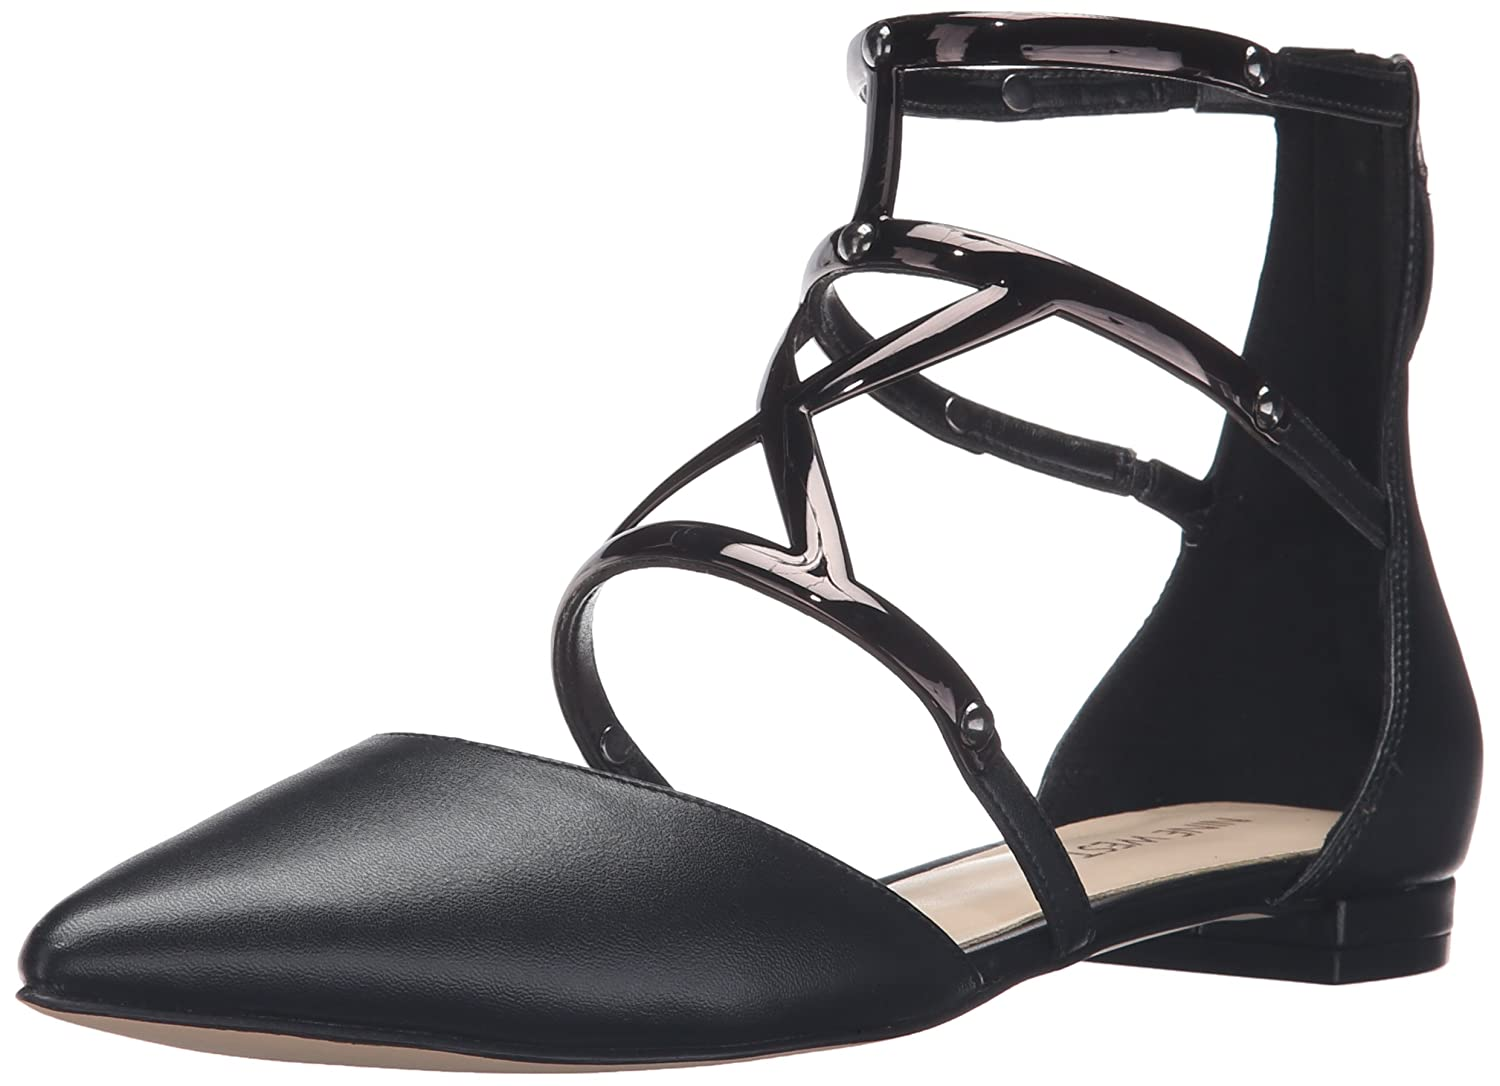 Nine West Women's Activista Synthetic Pointed Toe Flat B01ERP69F8 7.5 B(M) US|Black